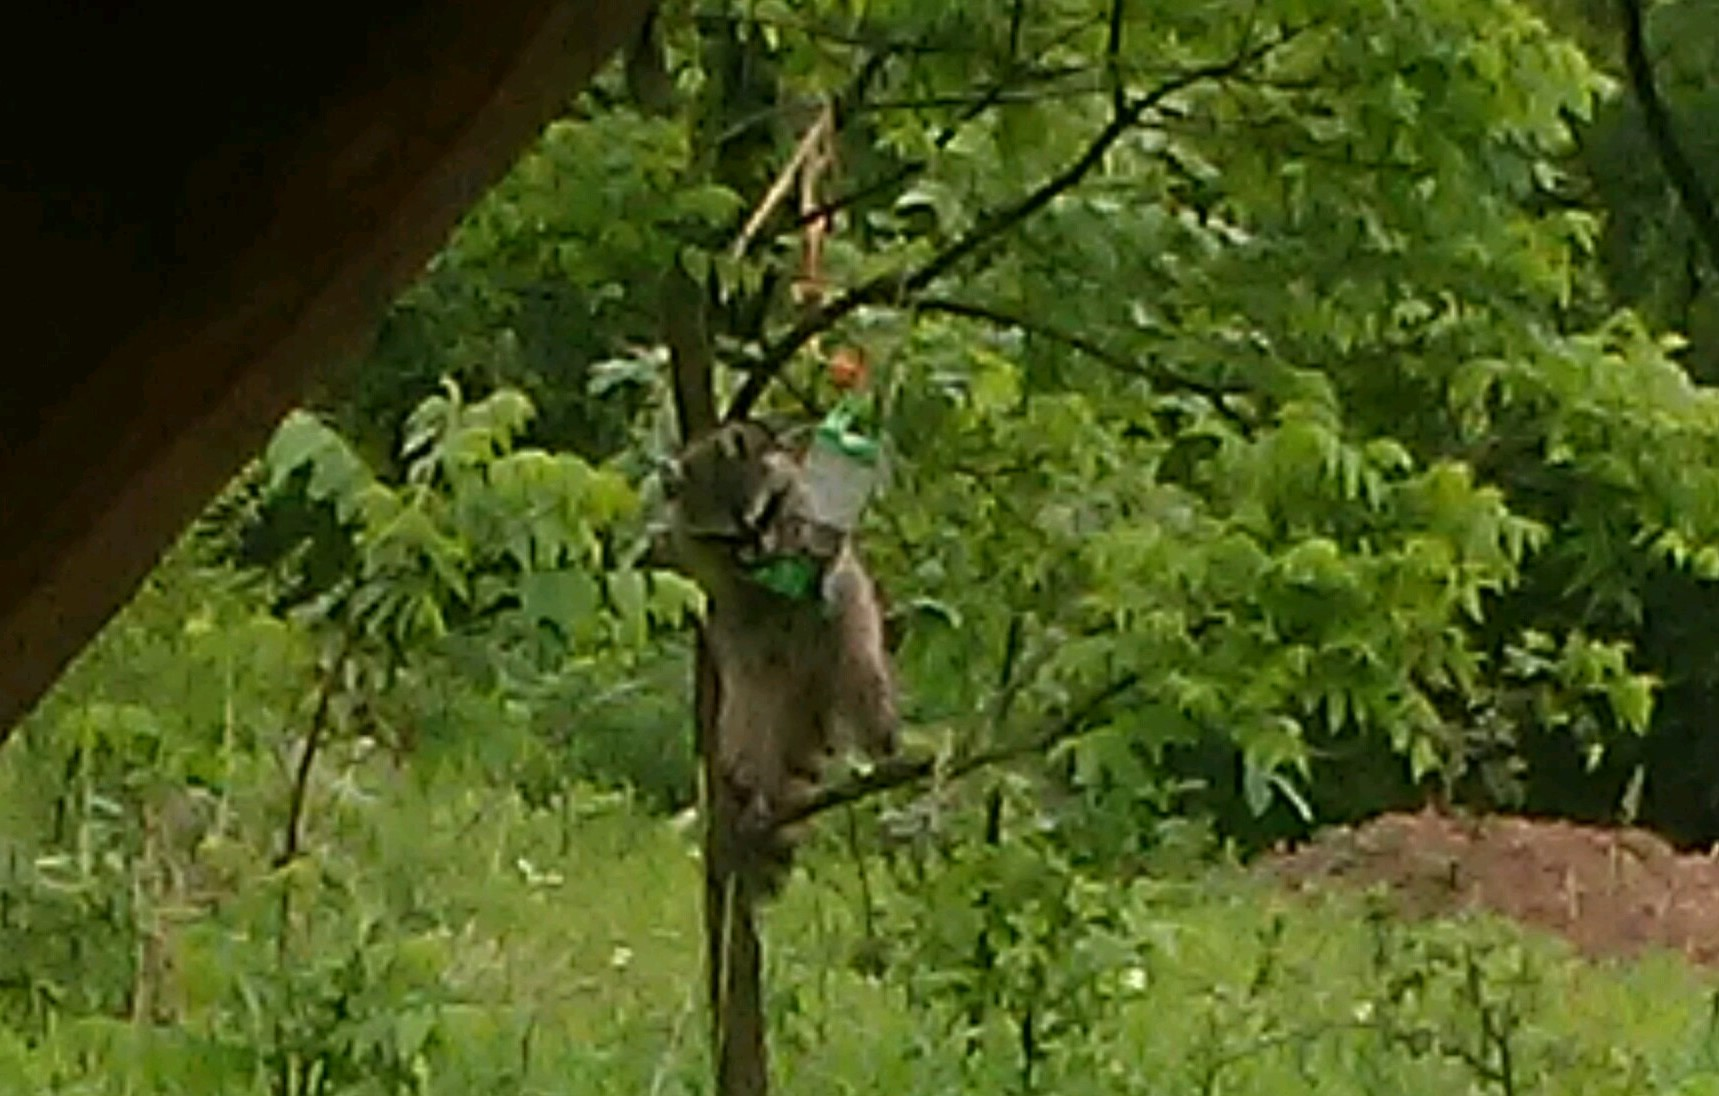 Raccoon second picture